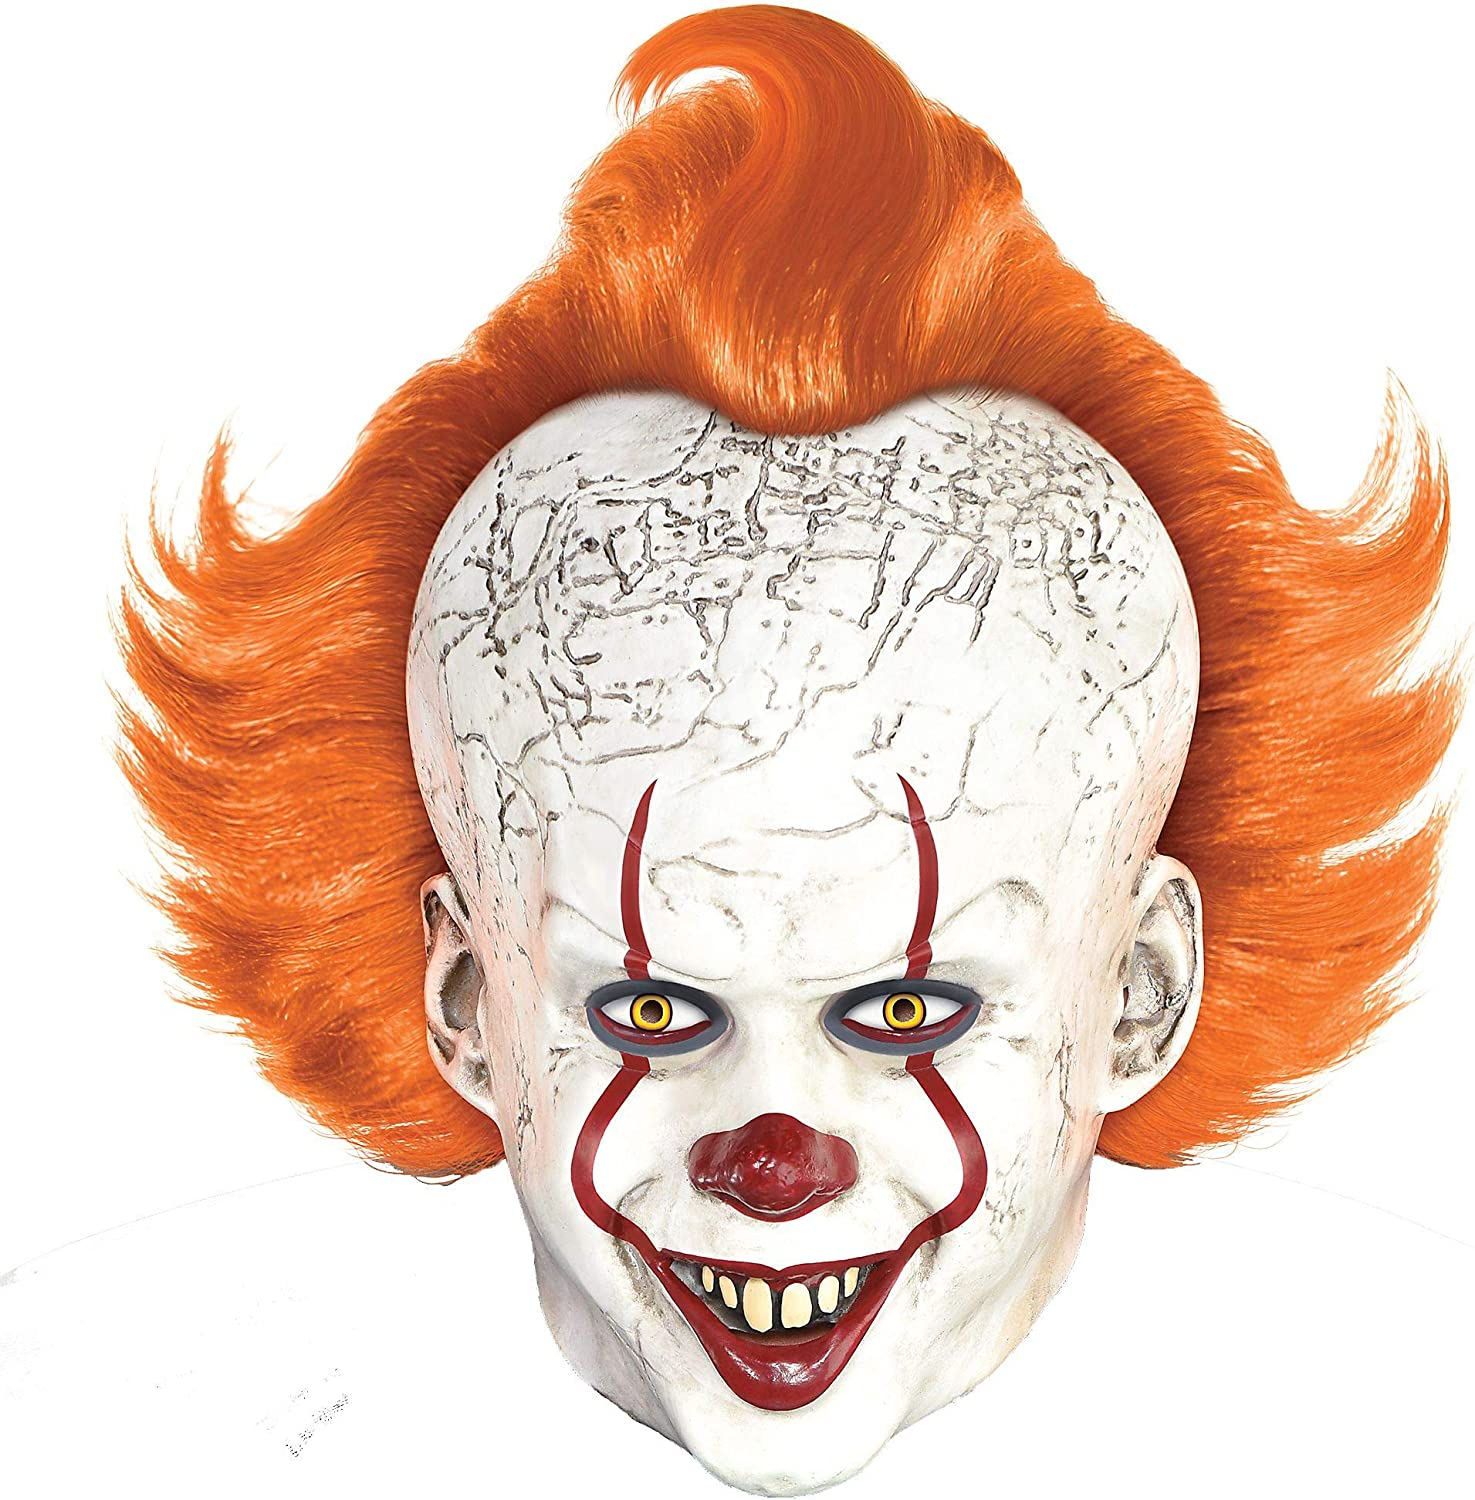 Adult Size Scary Clown Pennywise Inspired Overhead Latex Halloween Costume Mask